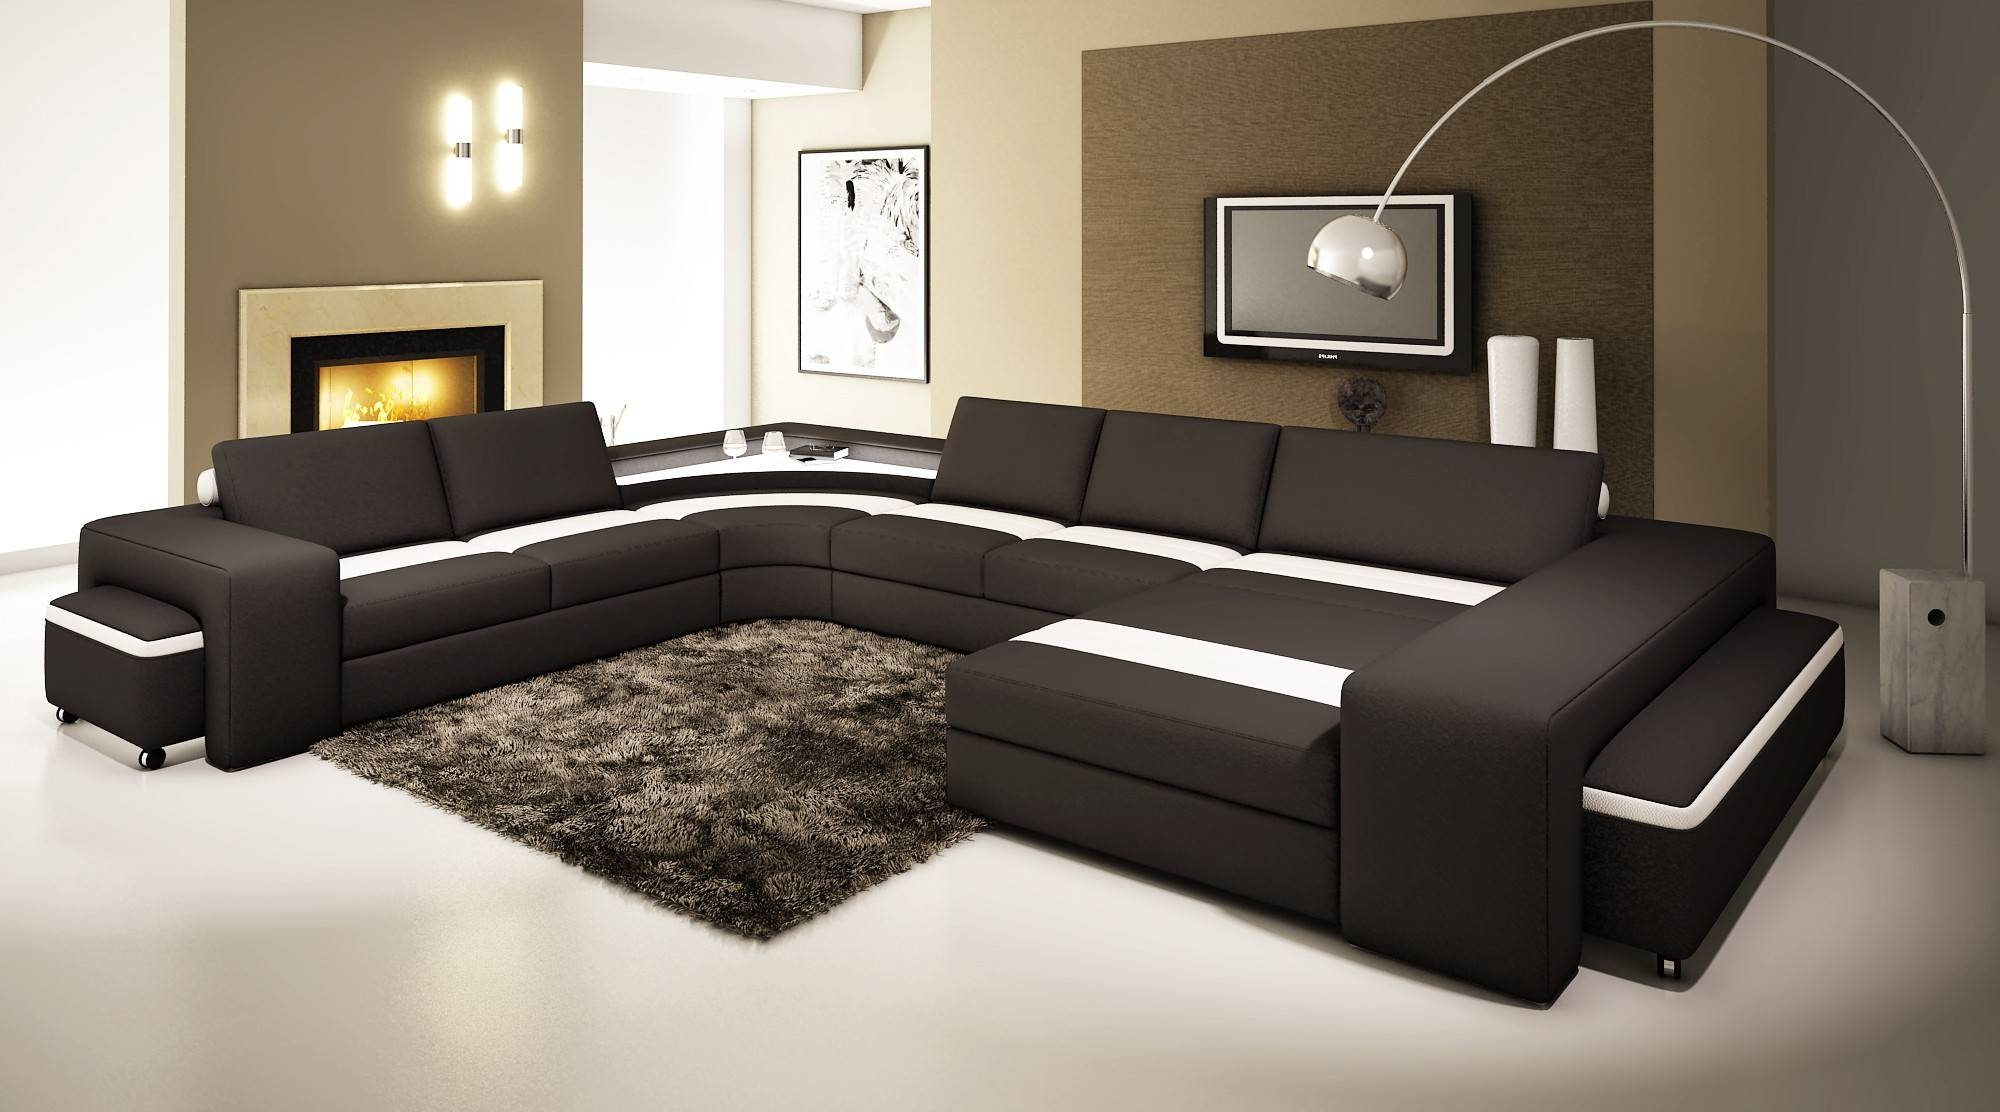 Leather Corner Sofa Uk | Tehranmix Decoration intended for Large Black Leather Corner Sofas (Image 16 of 30)